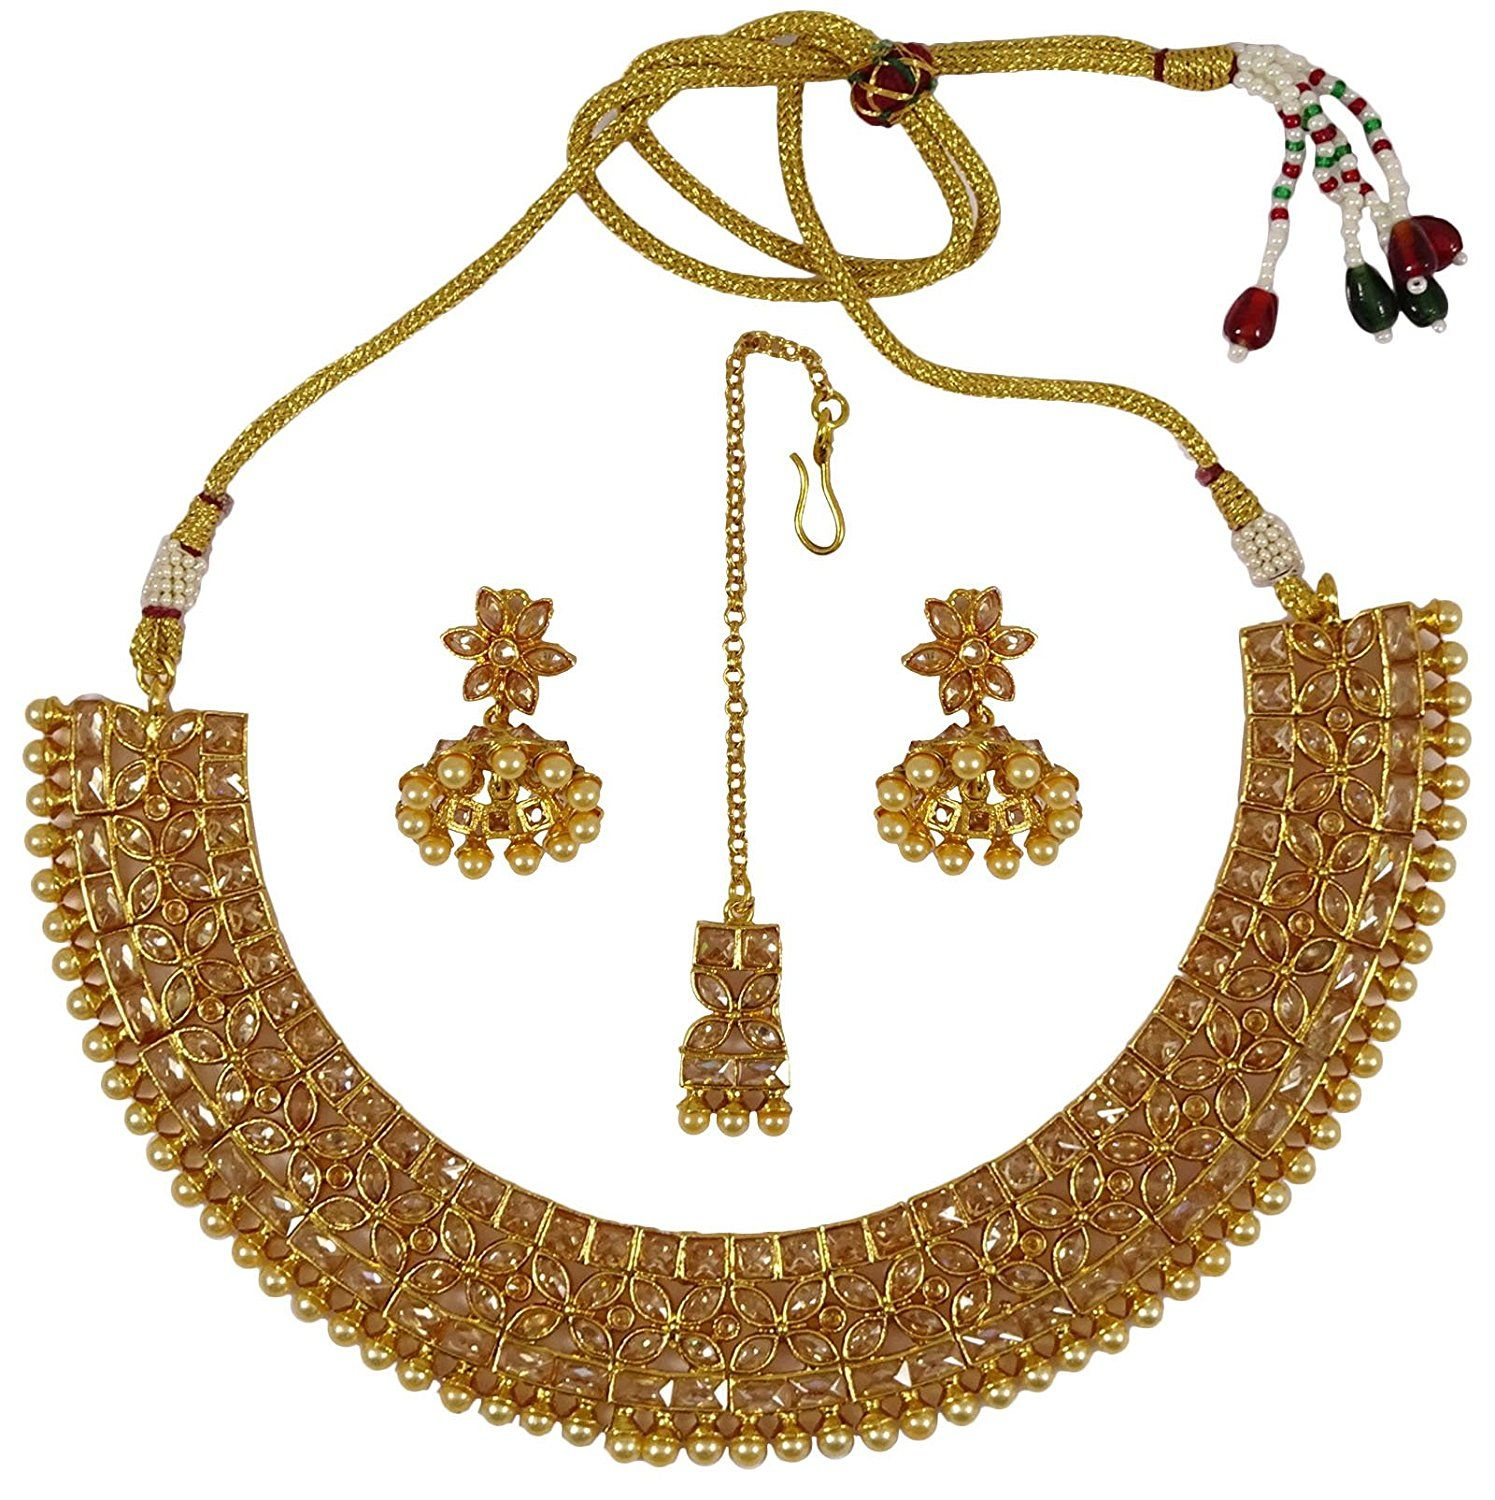 Engagement & Wedding Traditional Gold Tone Kundan 2pc Necklace Set Ethnic Wedding Bollywood Jewellery Bridal & Wedding Party Jewelry